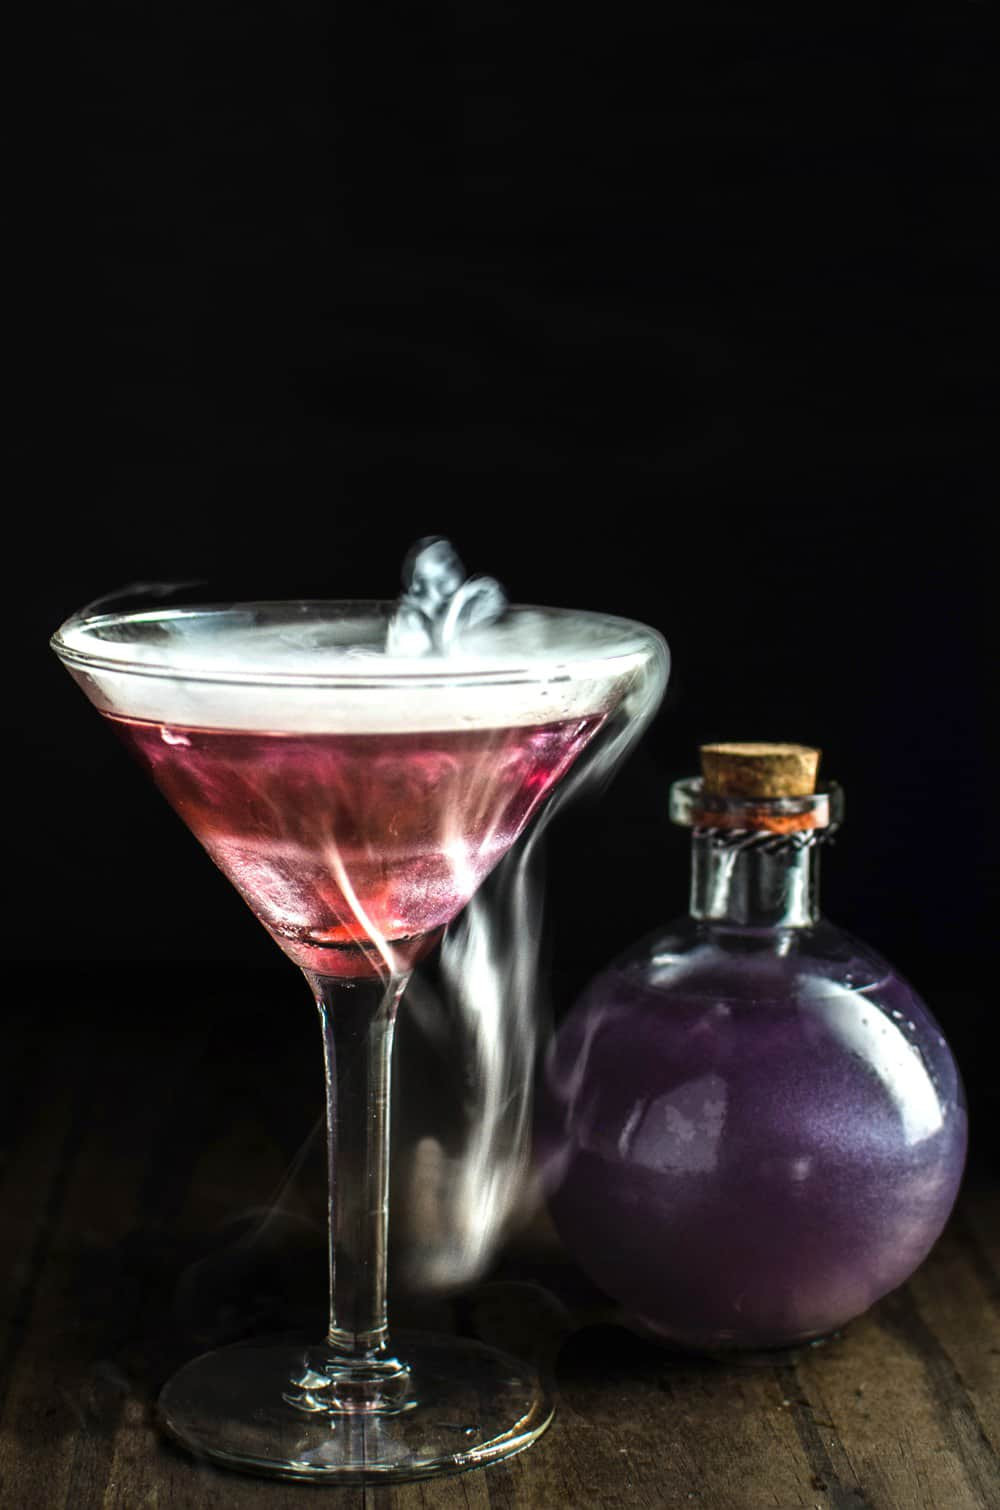 Halloween Liquor Drinks  The Witch s Heart Halloween Cocktail